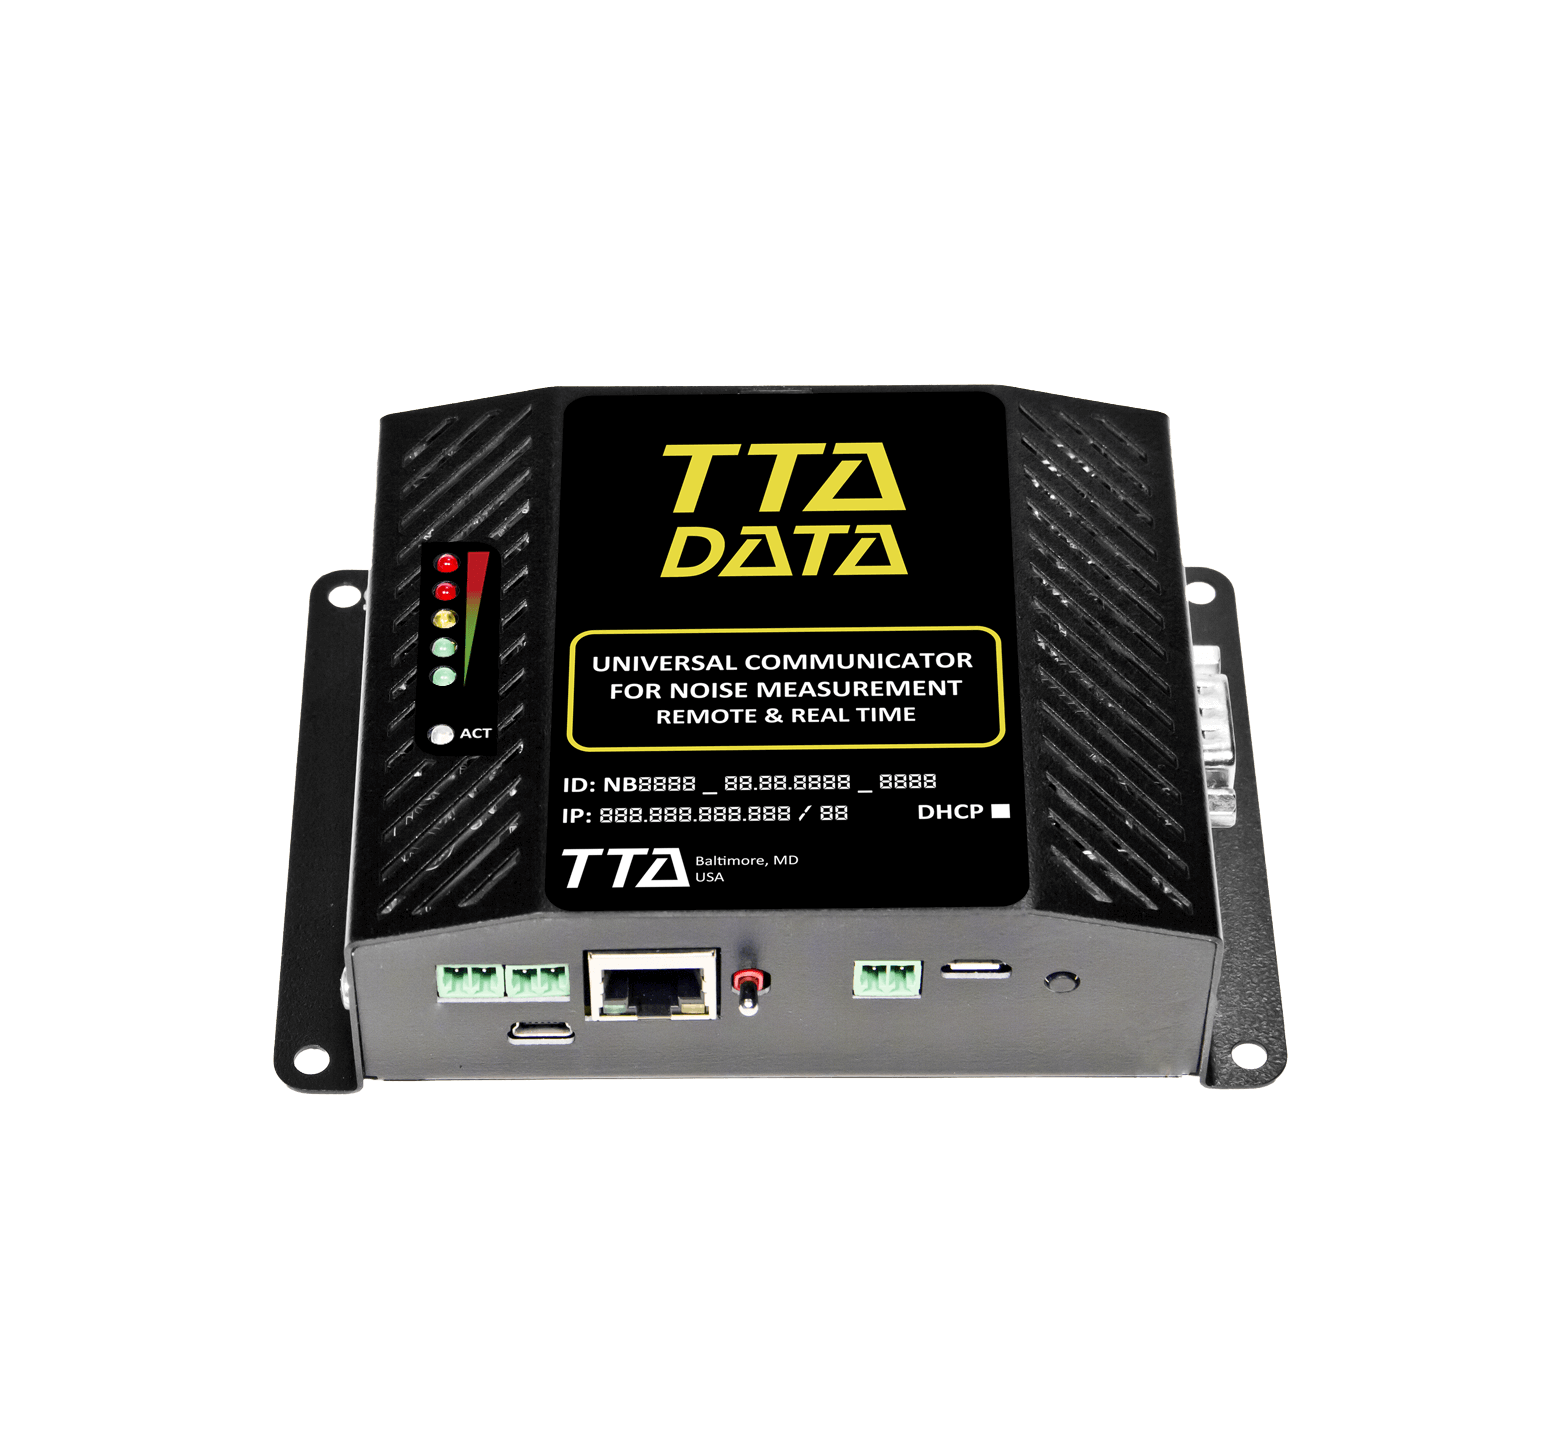 TTA Data datalogger environmental record capture temperature humidity wind speed direction logger